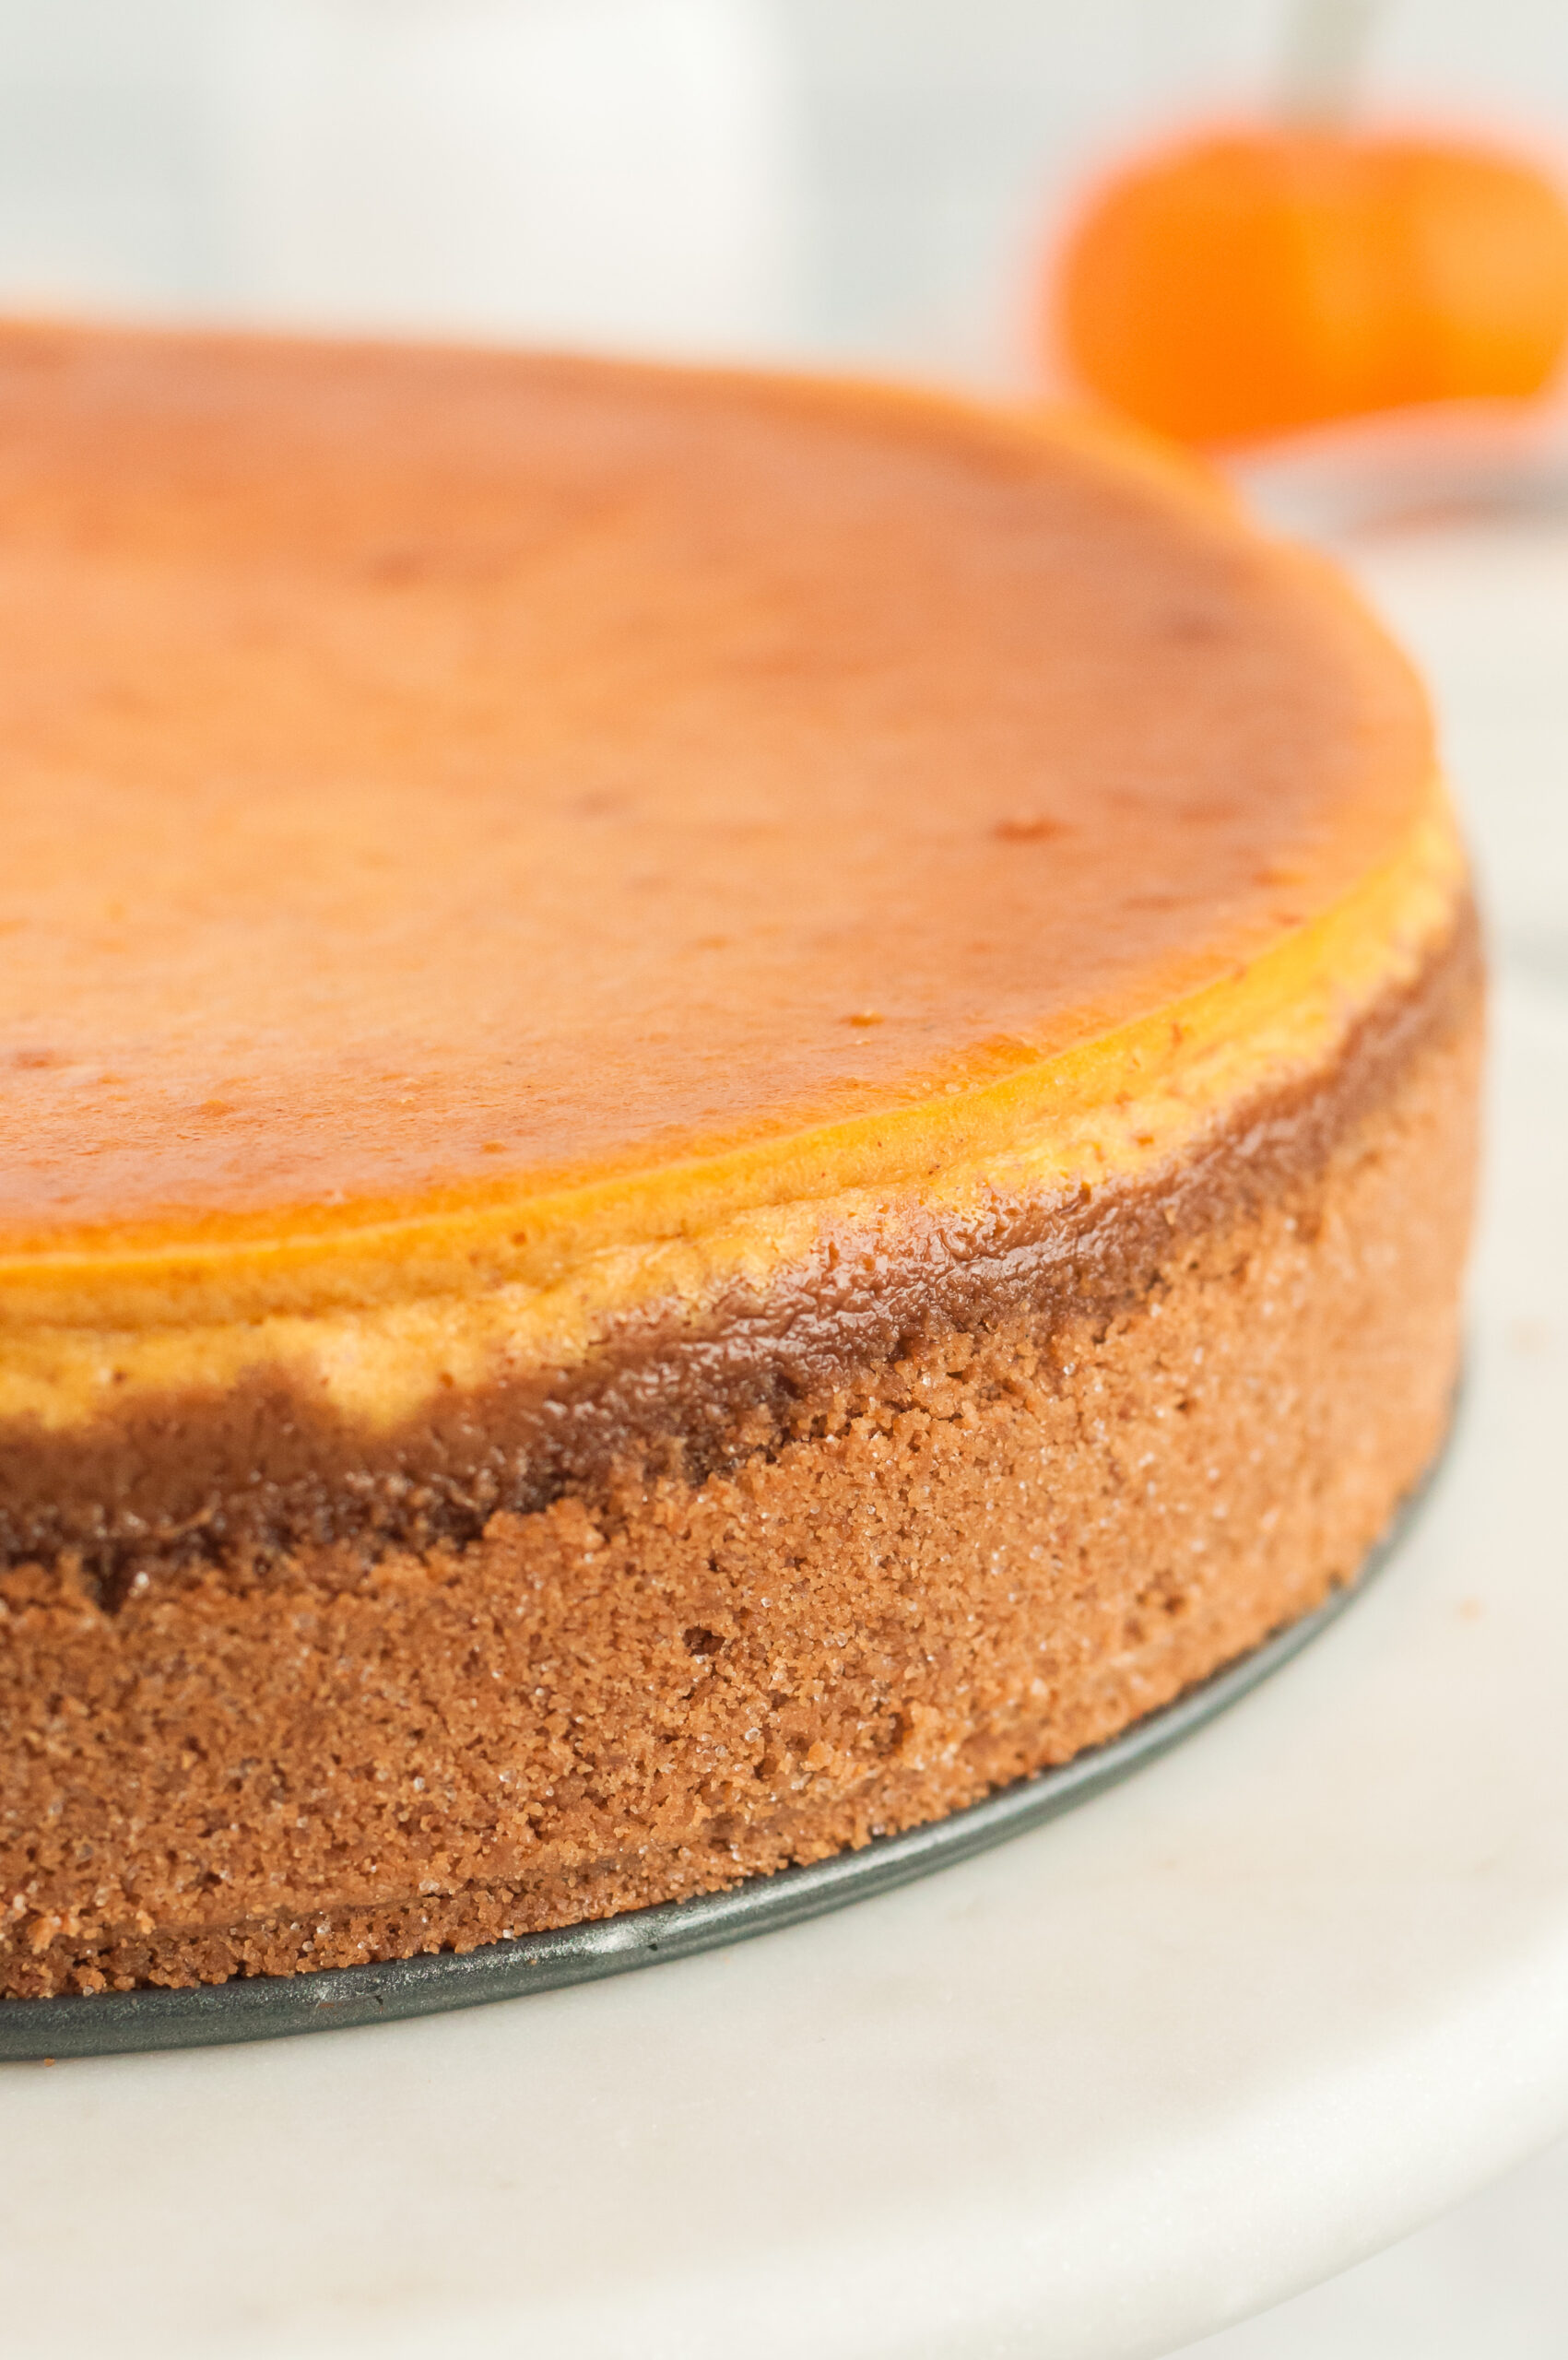 delicious pumpkin cheesecake fresh out of the oven. crusted layers